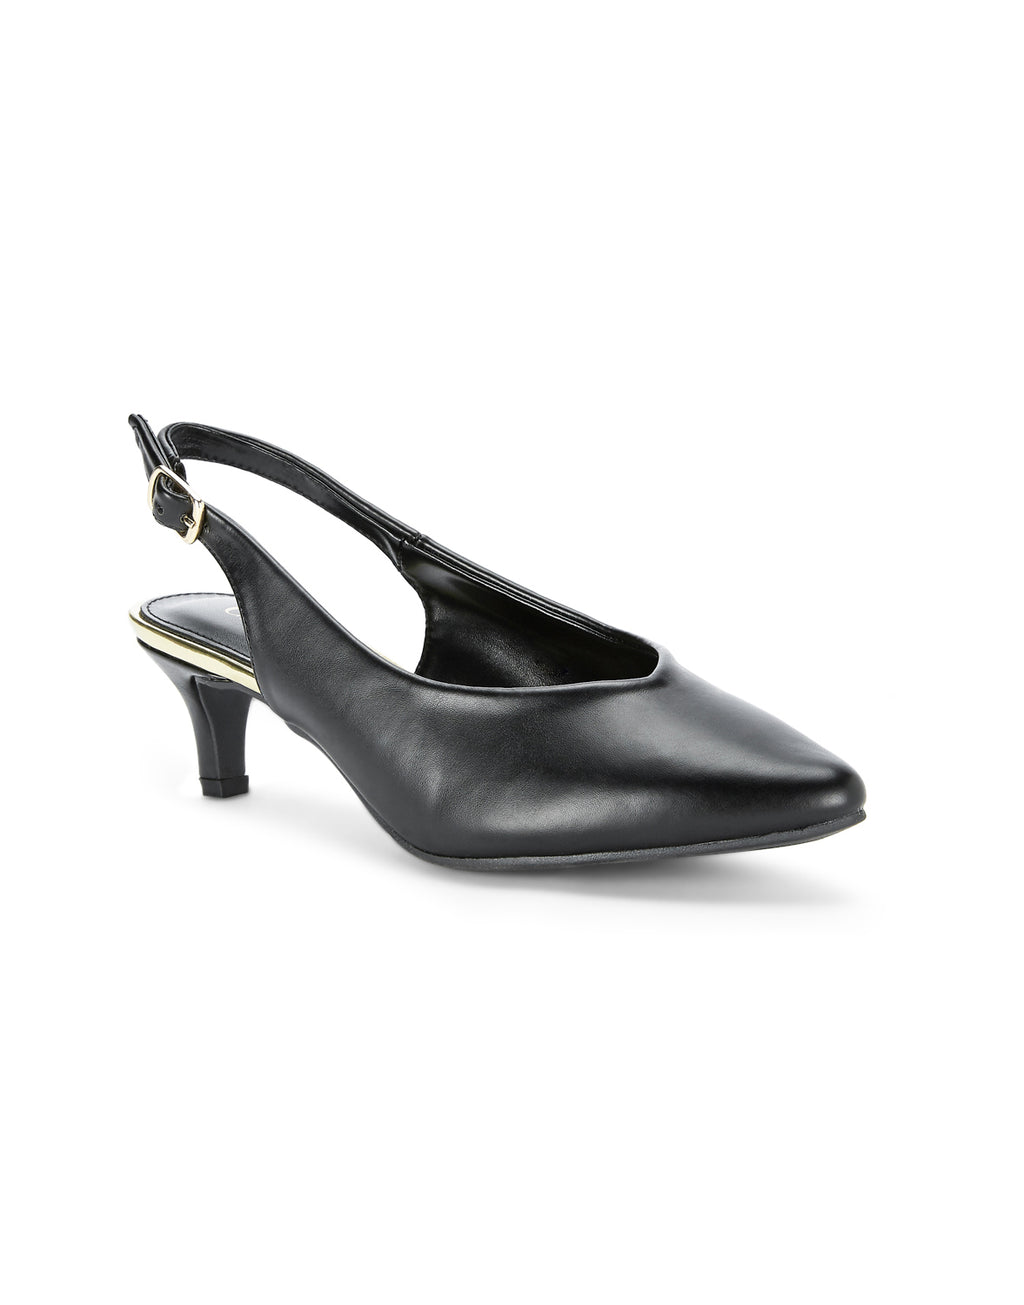 Claire Vintage Black Pumps